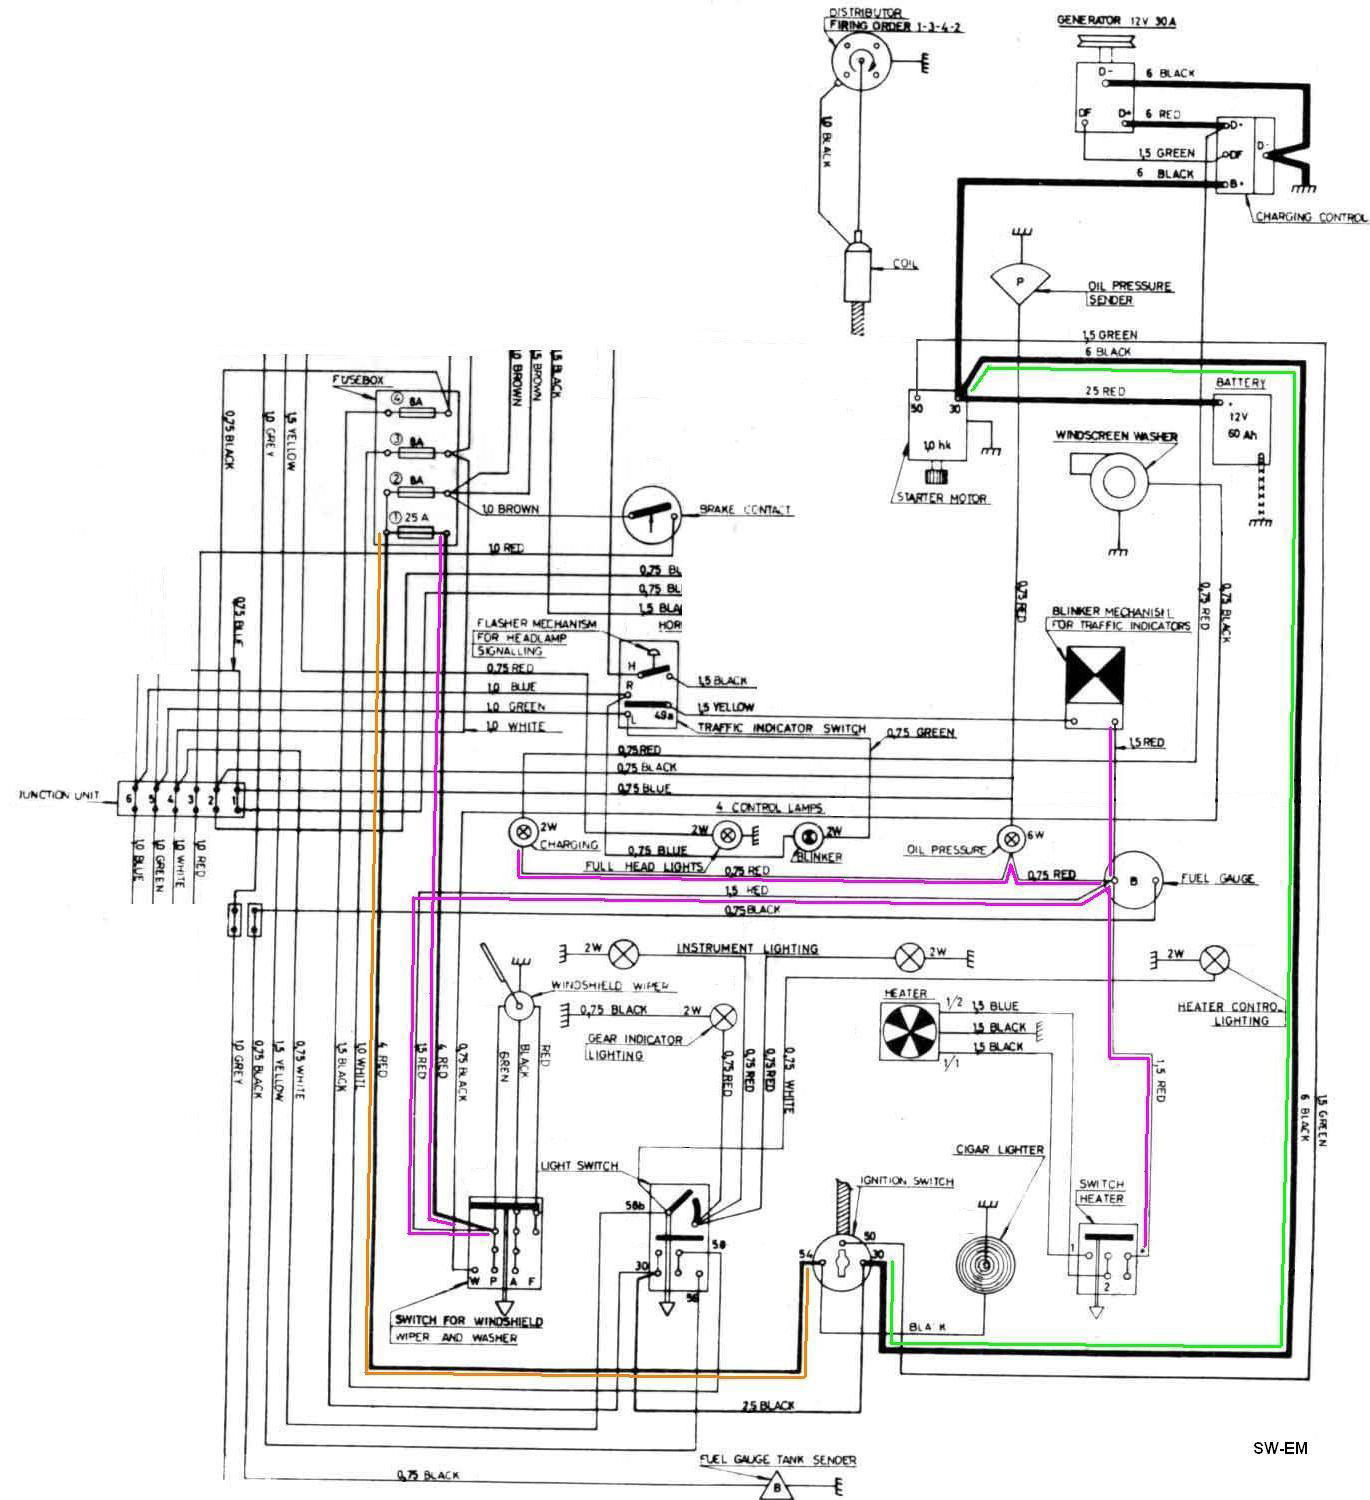 IGN SW wiring diag 122 markup 1800 ignition wiring swedish vs british design volvo penta wiring harness diagram at webbmarketing.co